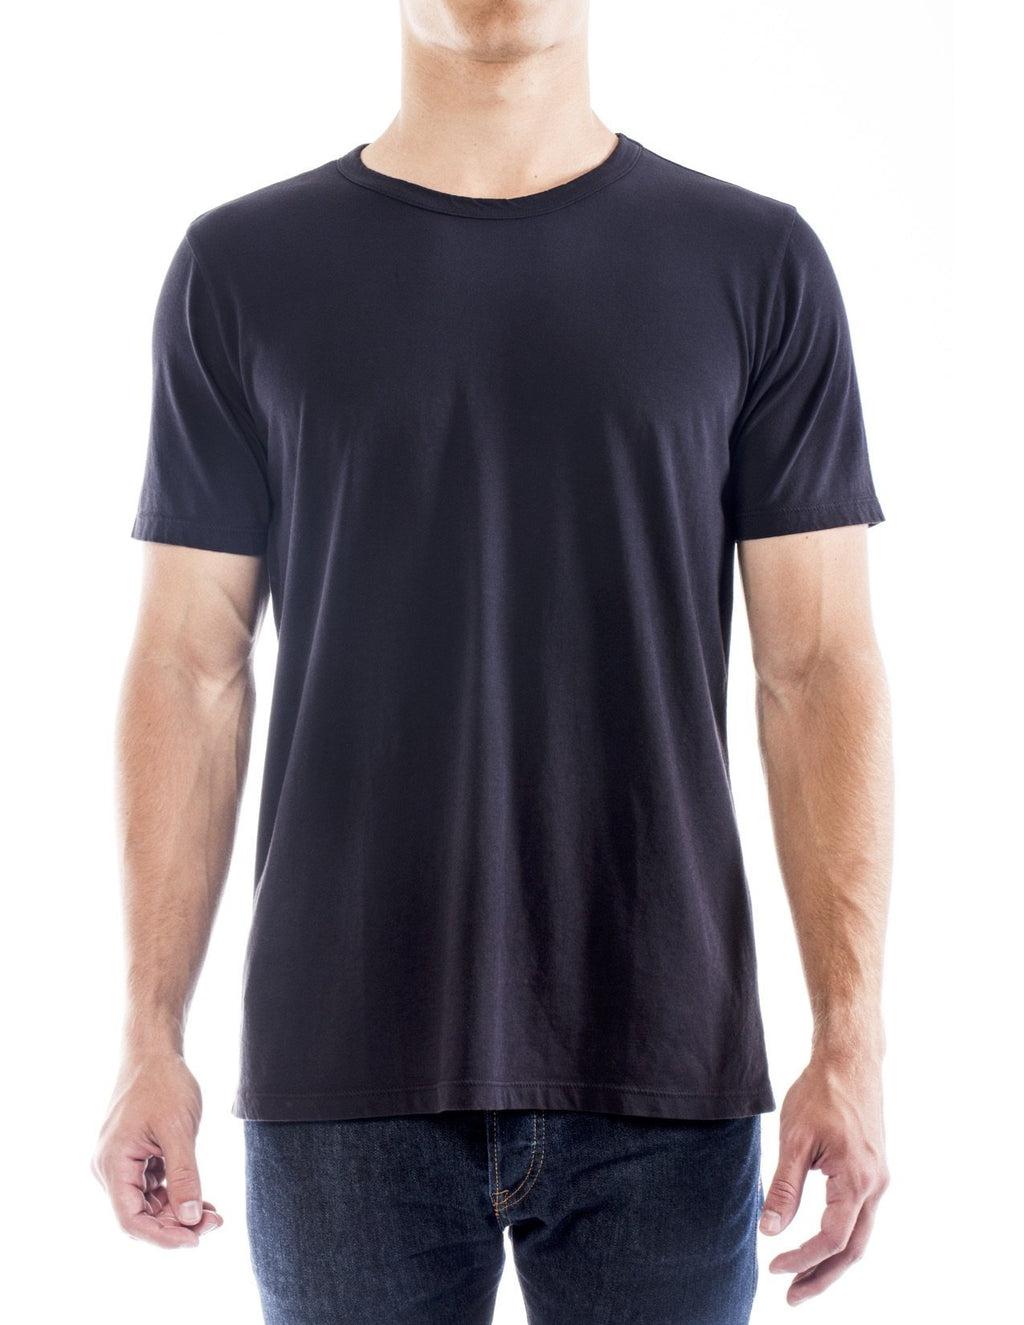 Classic Supima Cotton Crew - Leisure of NYC. Men's Supima Cotton T-shirt.